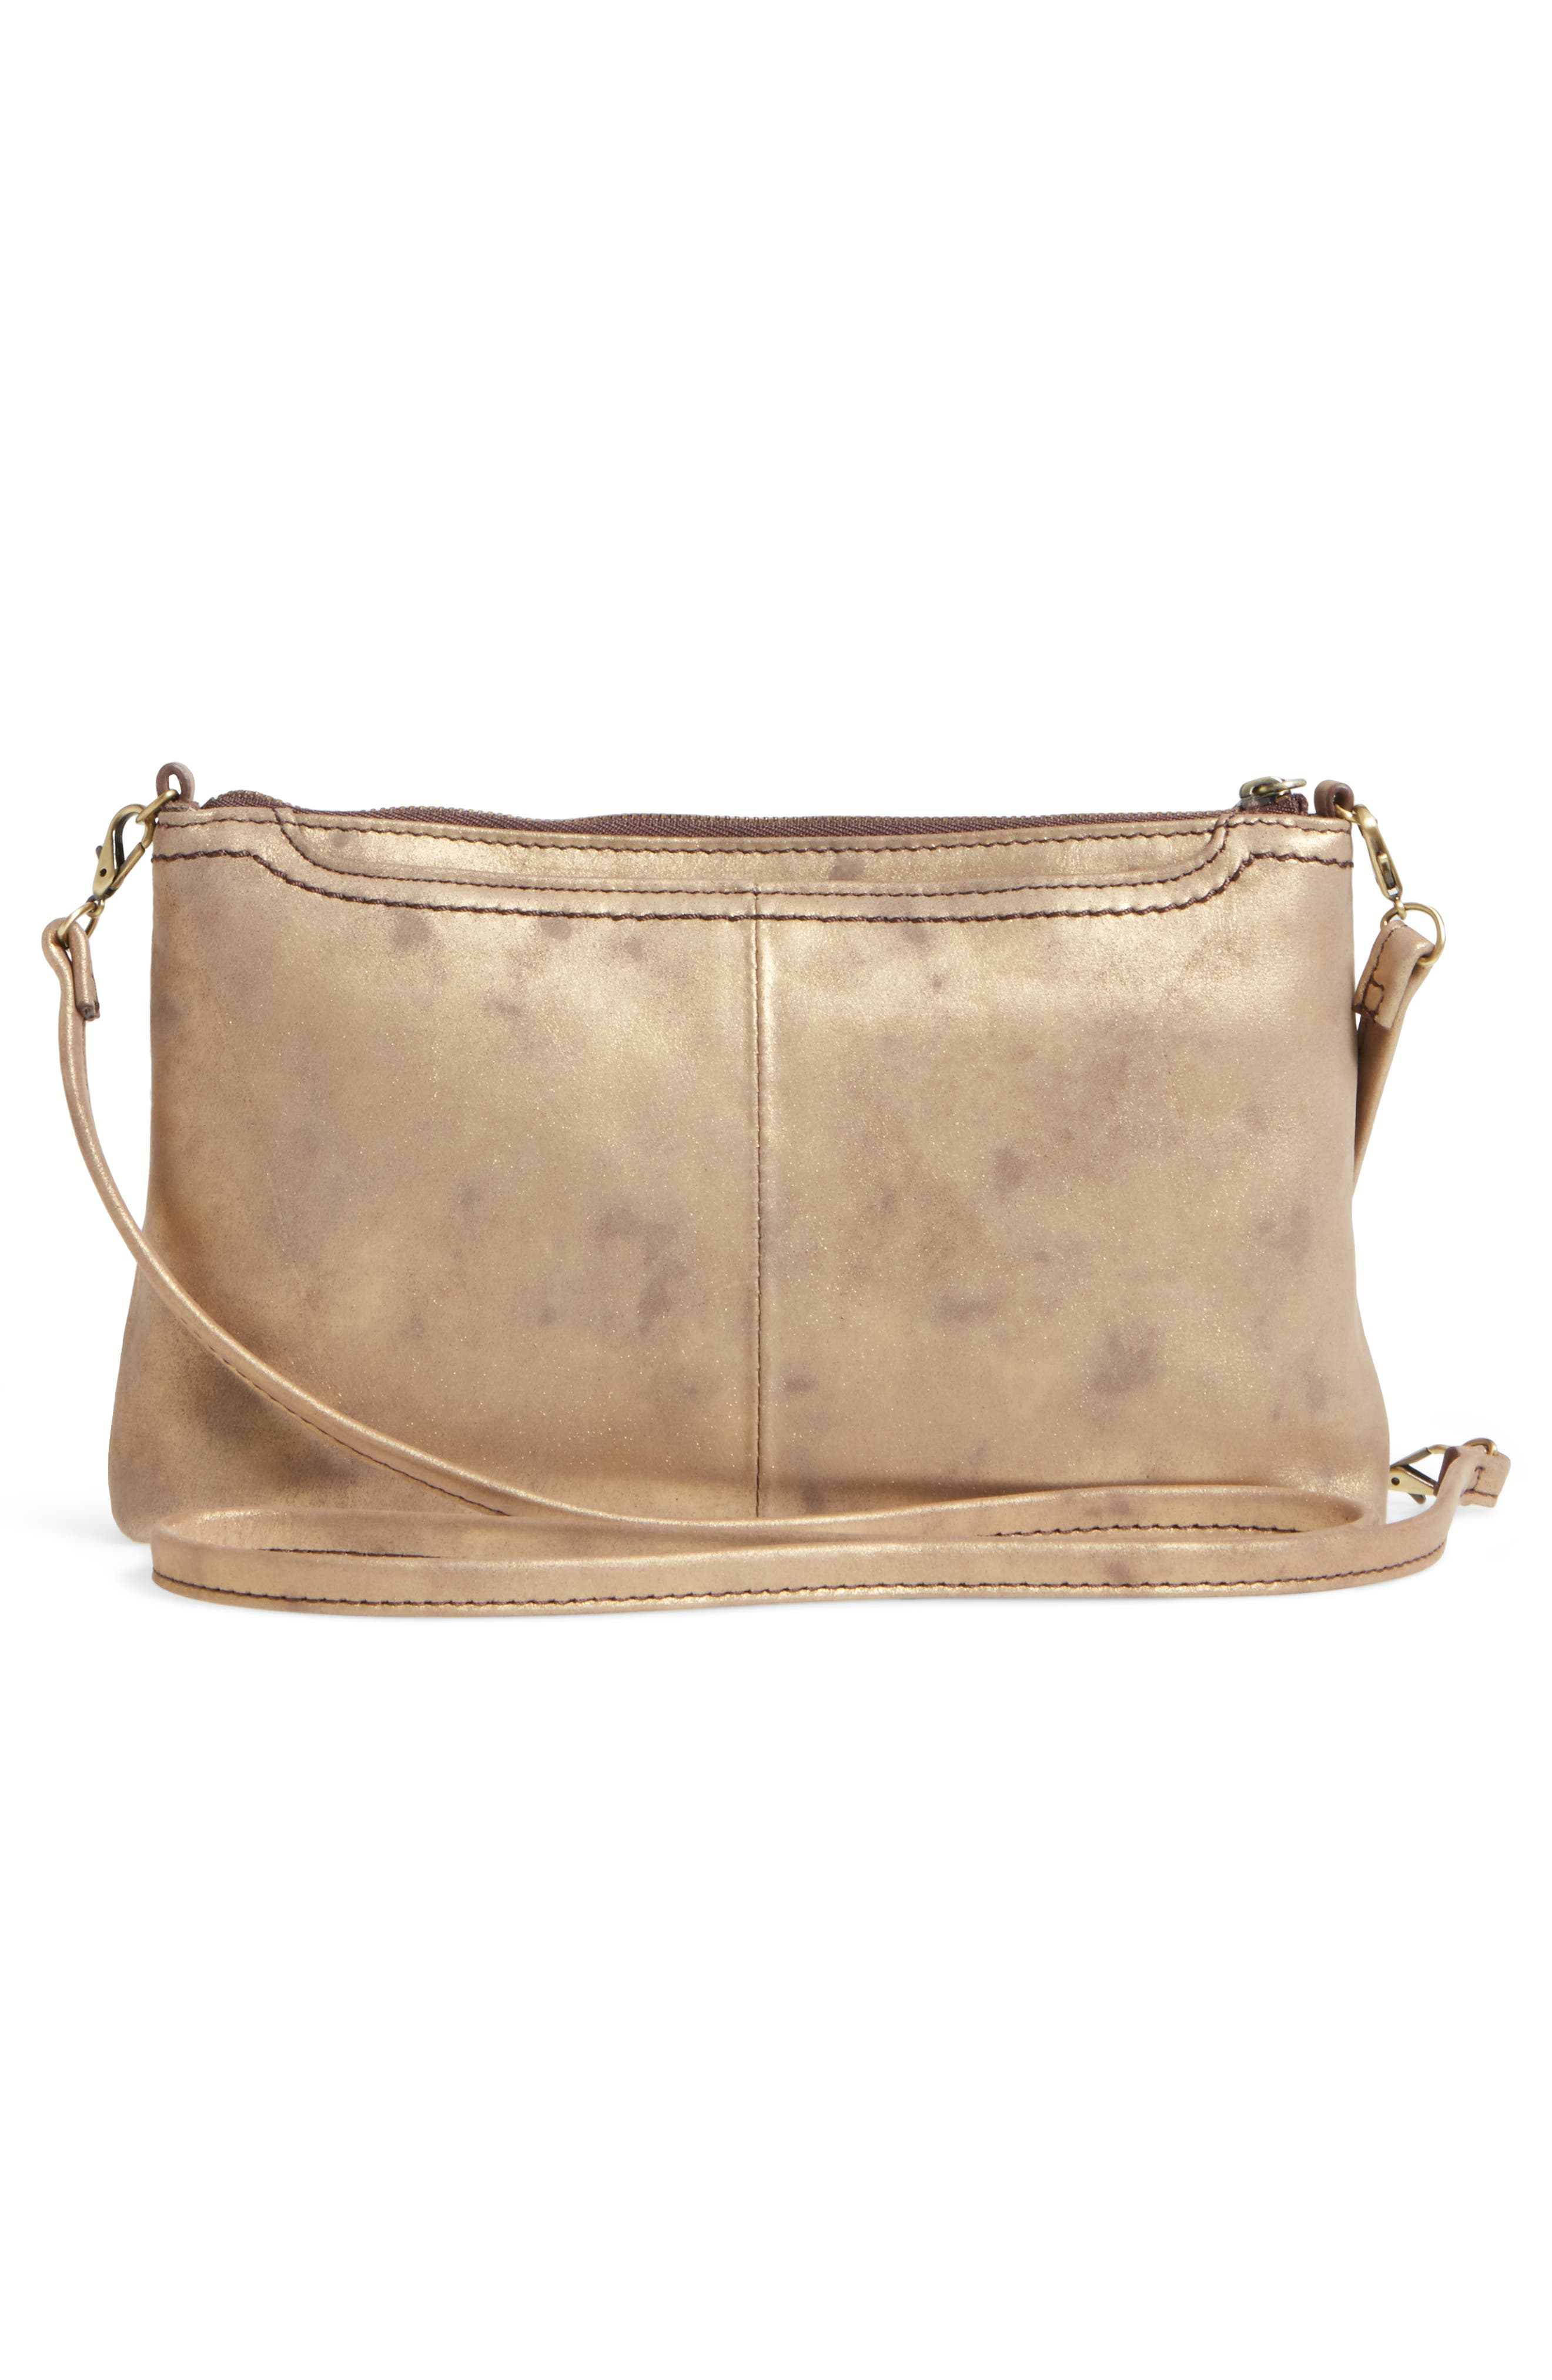 'Darcy' Leather Crossbody Bag,                             Alternate thumbnail 54, color,